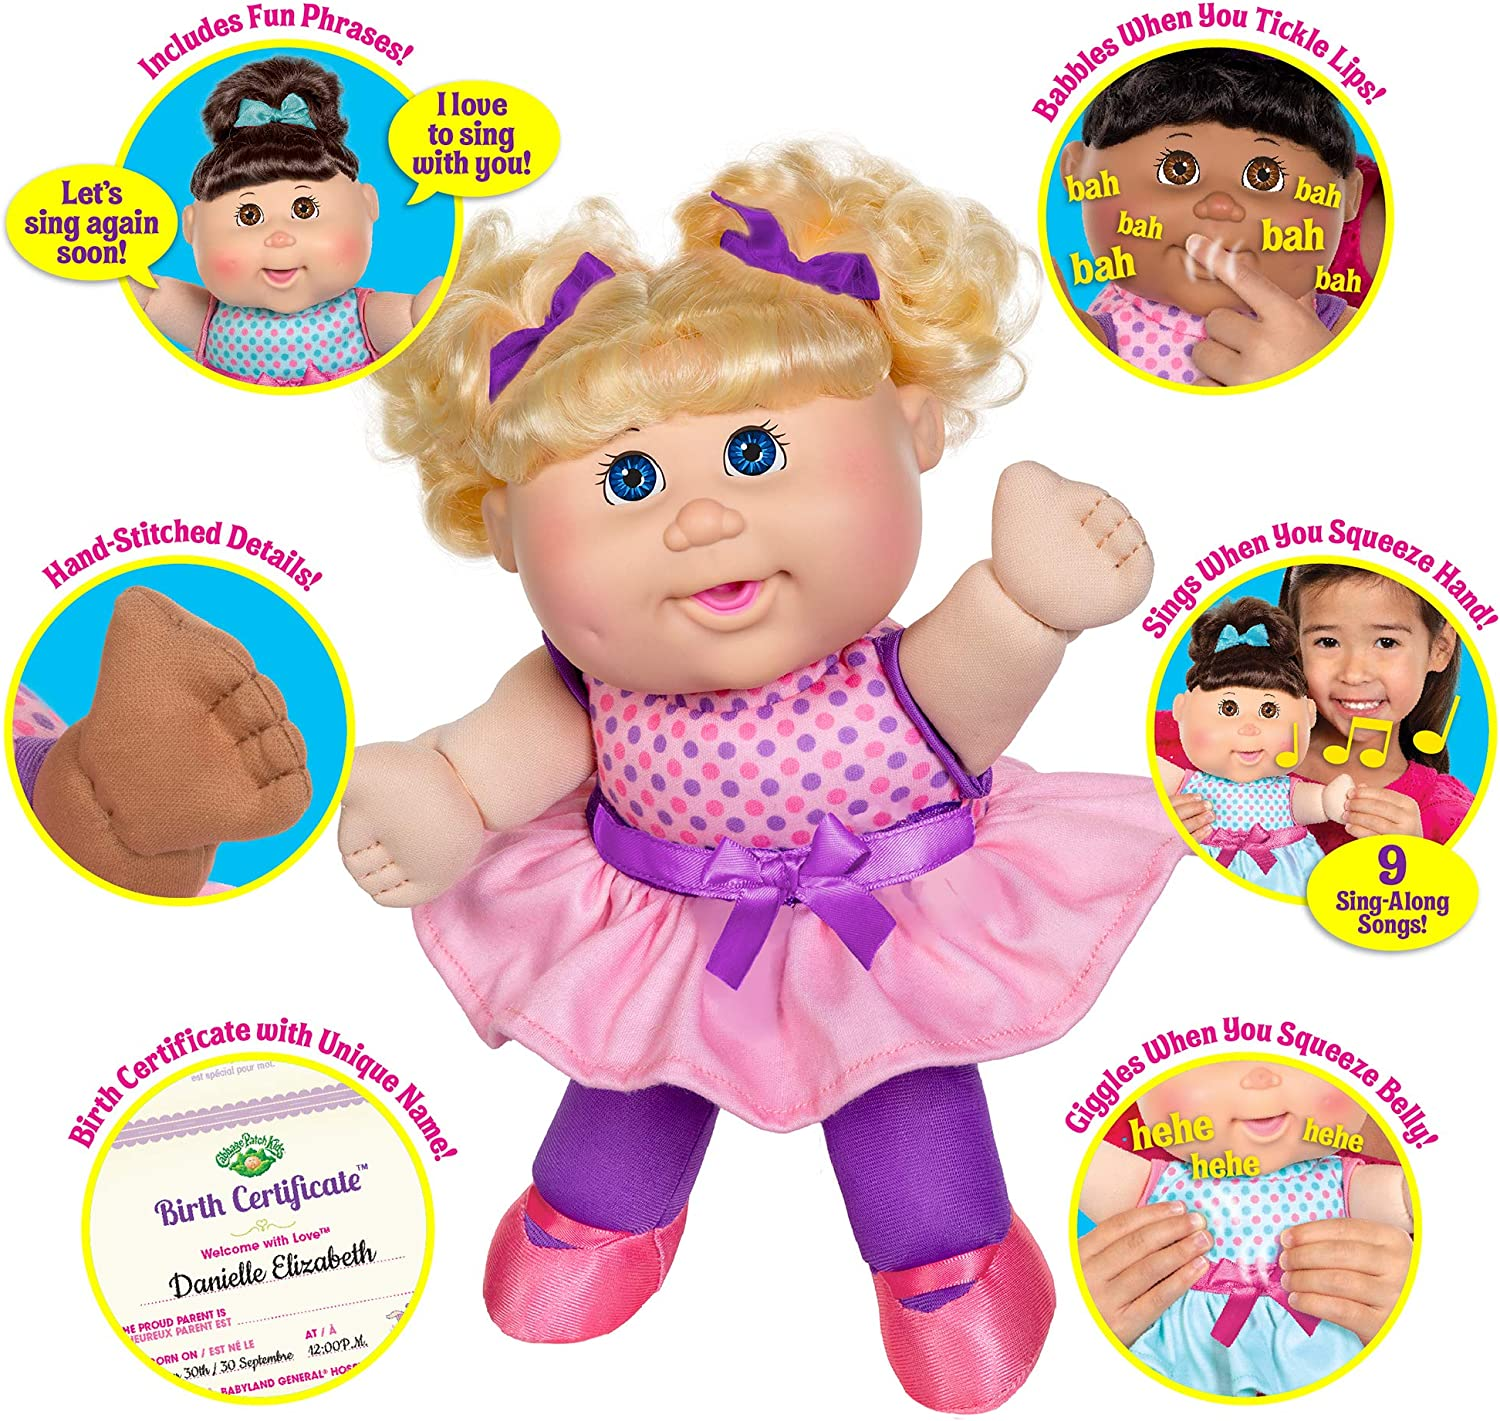 """Amazon.com: Cabbage Patch Kids Deluxe Babble 'n Sing Toddler in Pink  Fashion, 11"""" - Squeeze Hand, Doll Babbles, Giggles, Sings! 9 Sing-Along  Songs - Classic 1998 CPK Dolls!: Toys & Games"""